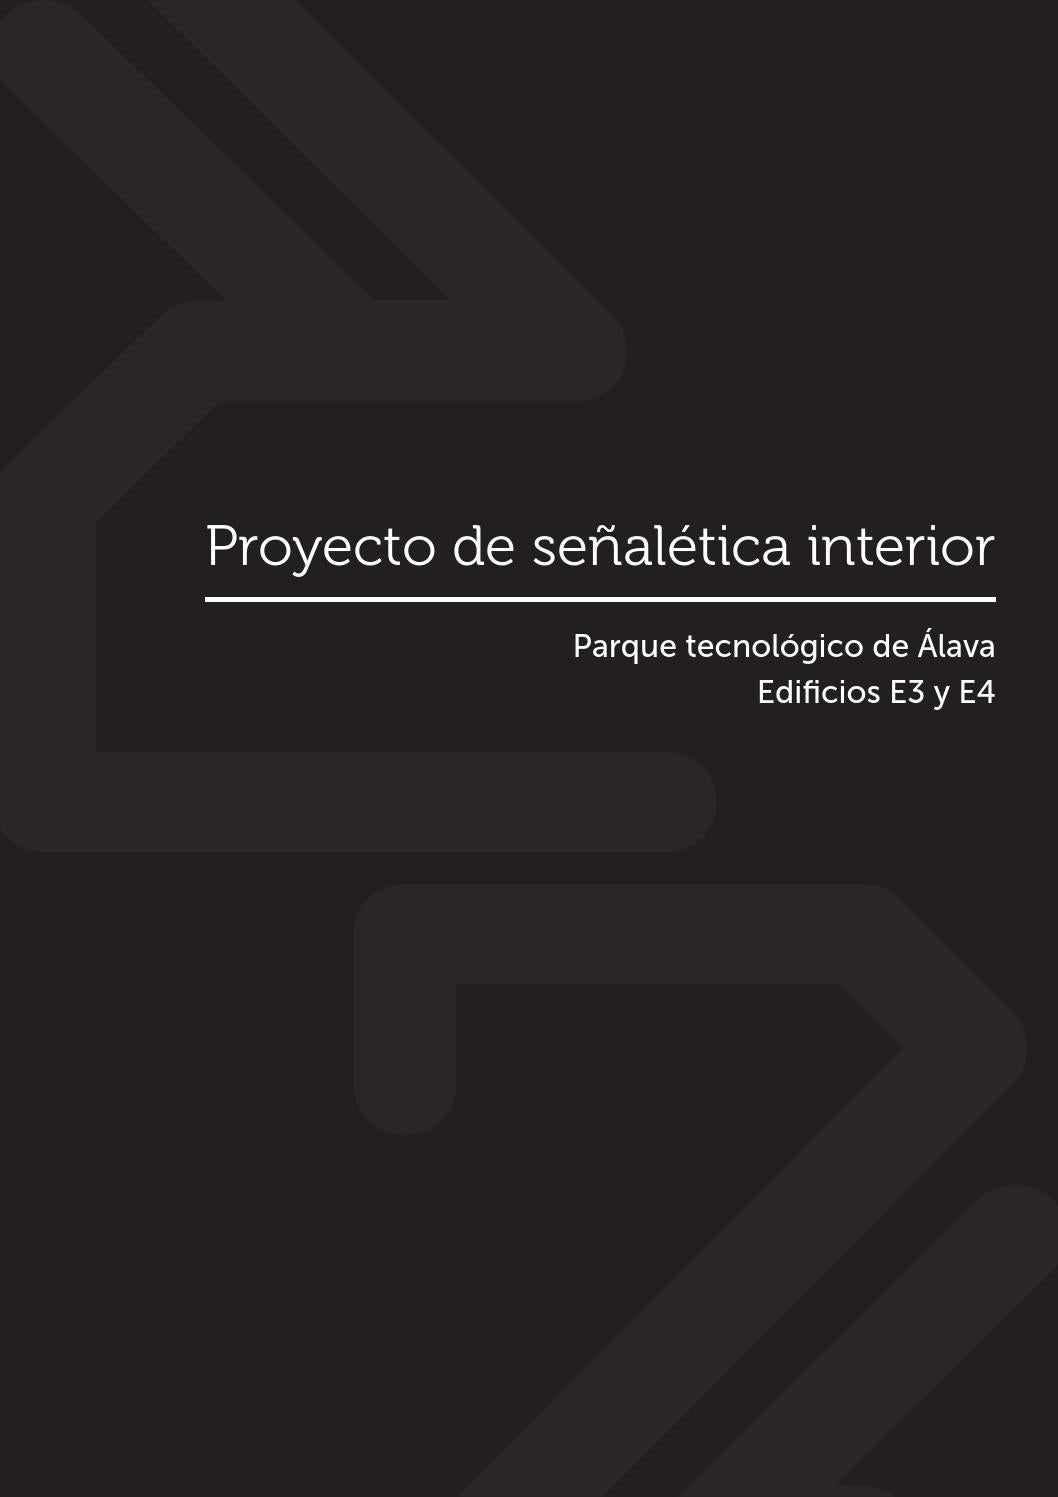 Proyecto de se al tica interior by alba gonz lez issuu for Proyecto interior